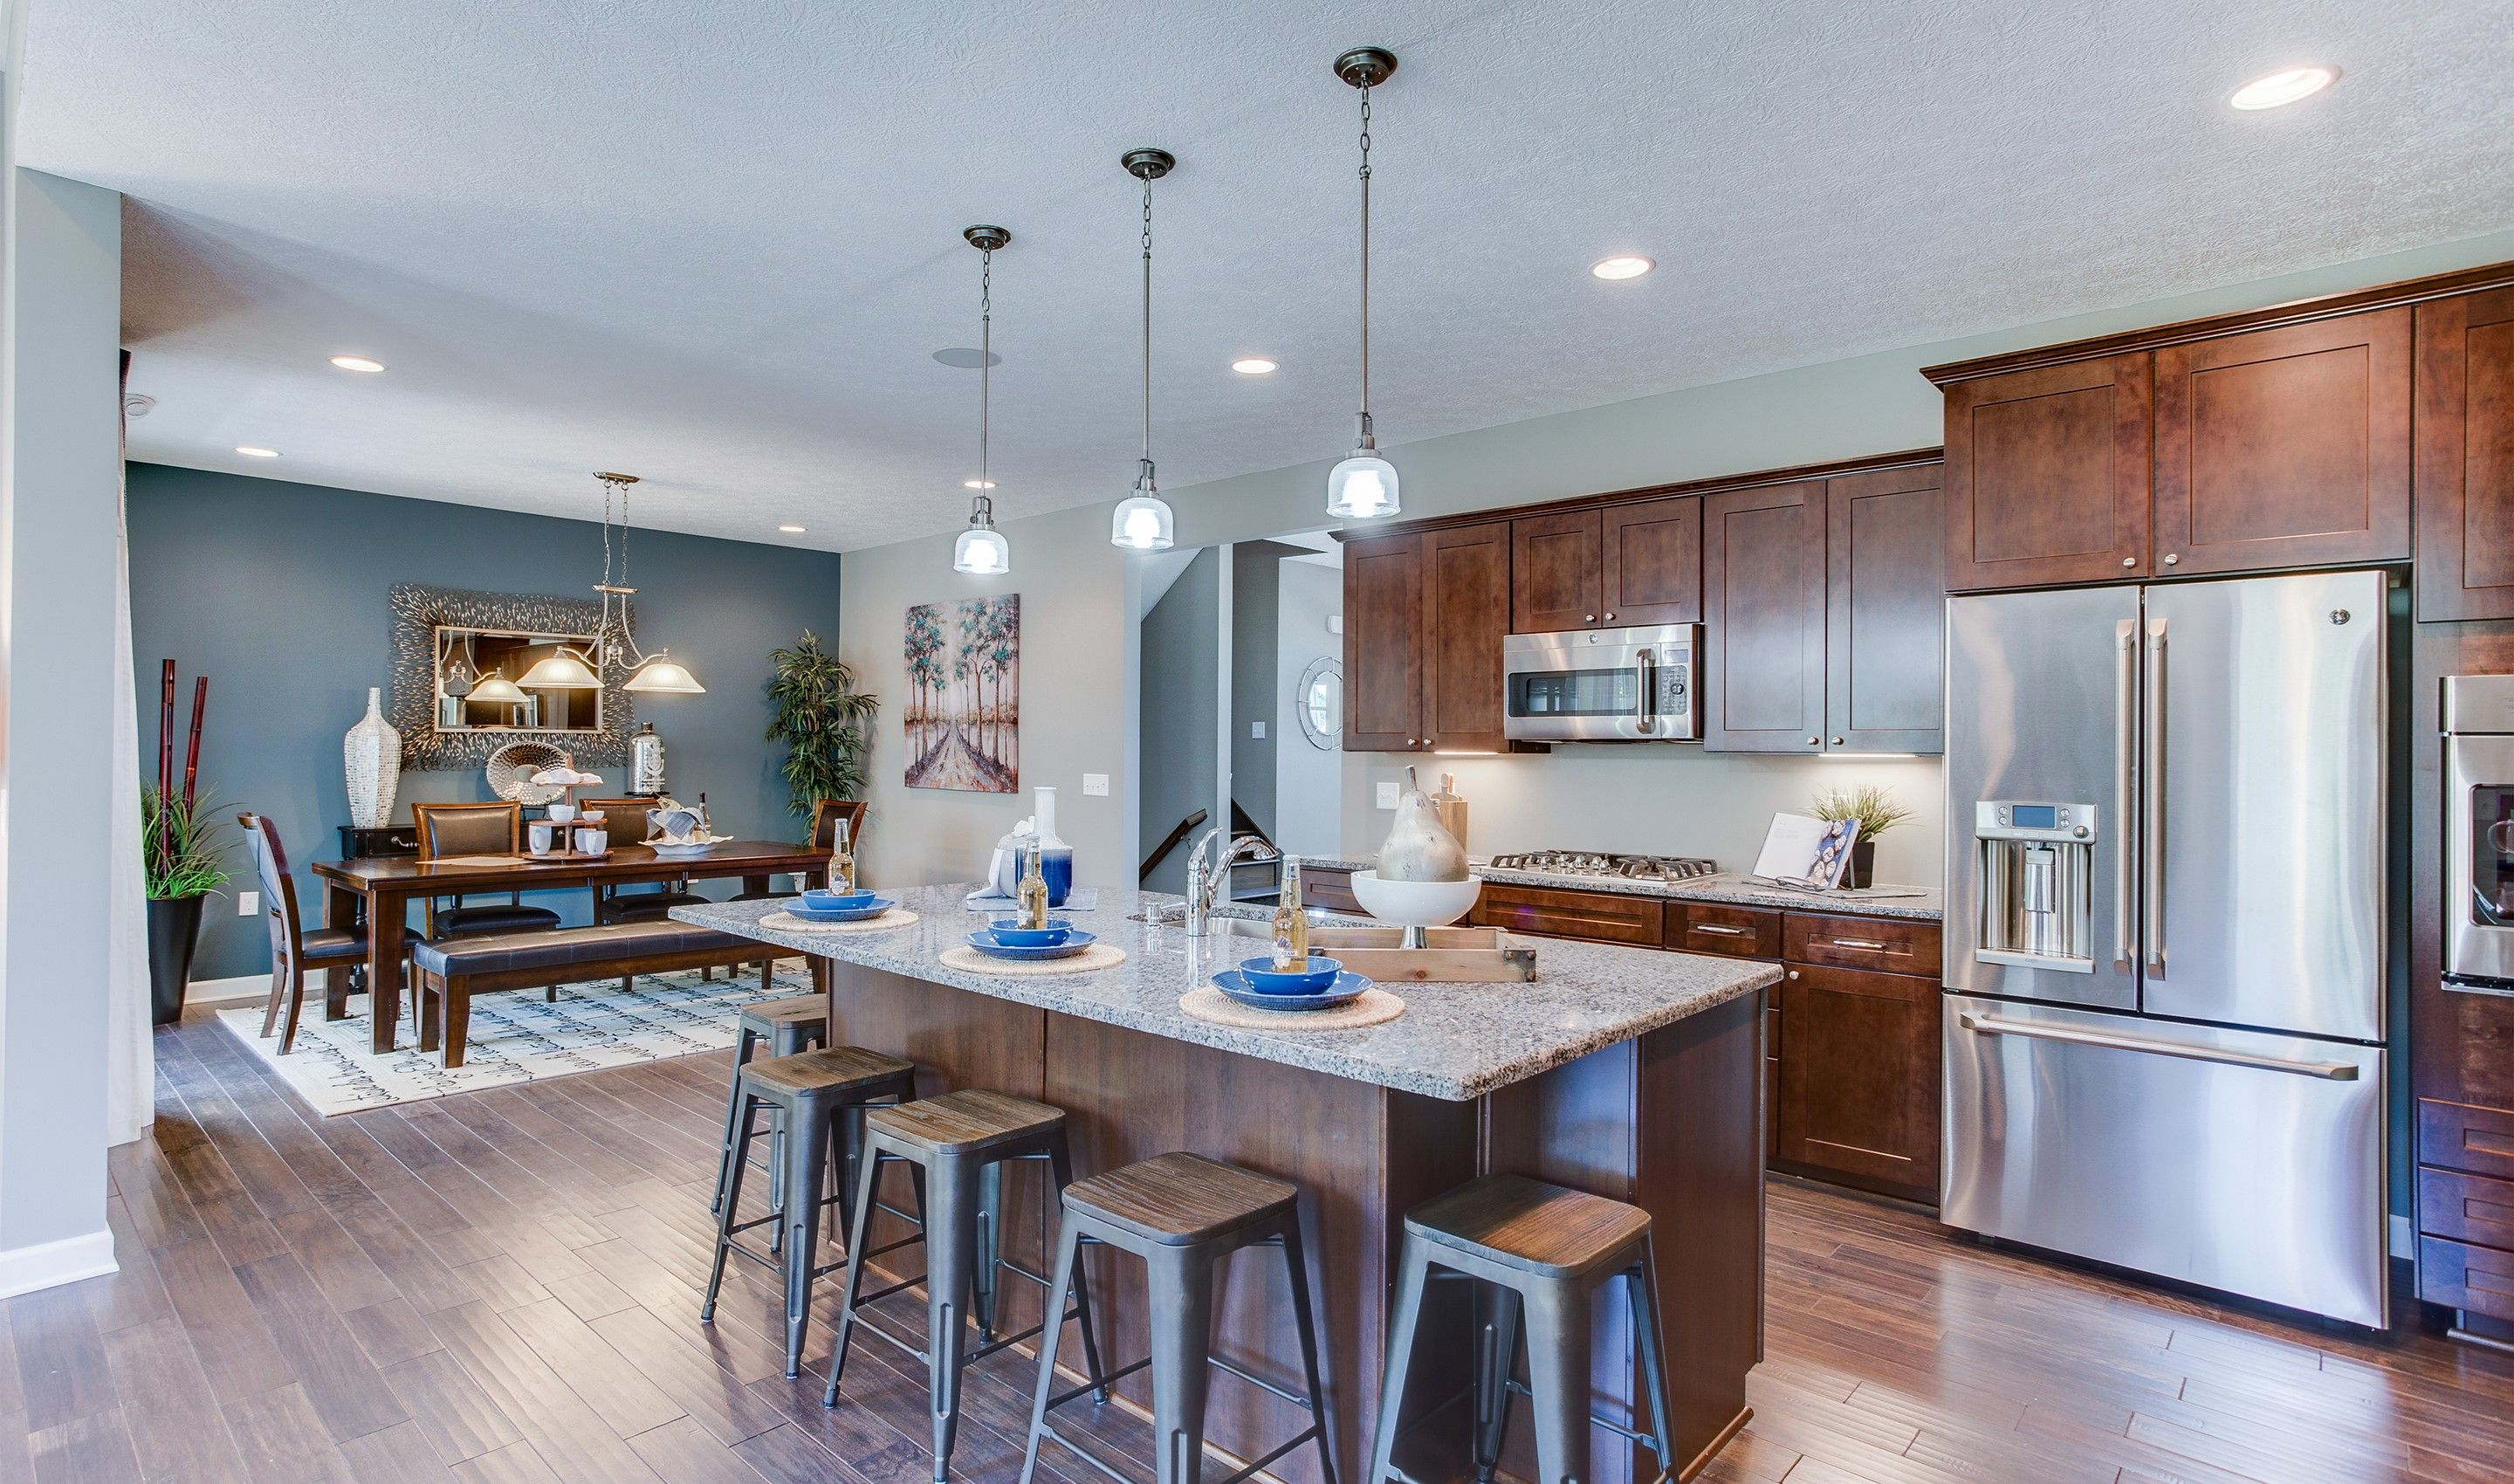 Kitchen featured in the Pendleton II By K. Hovnanian® Homes - Build on Your Lot in Toledo, OH